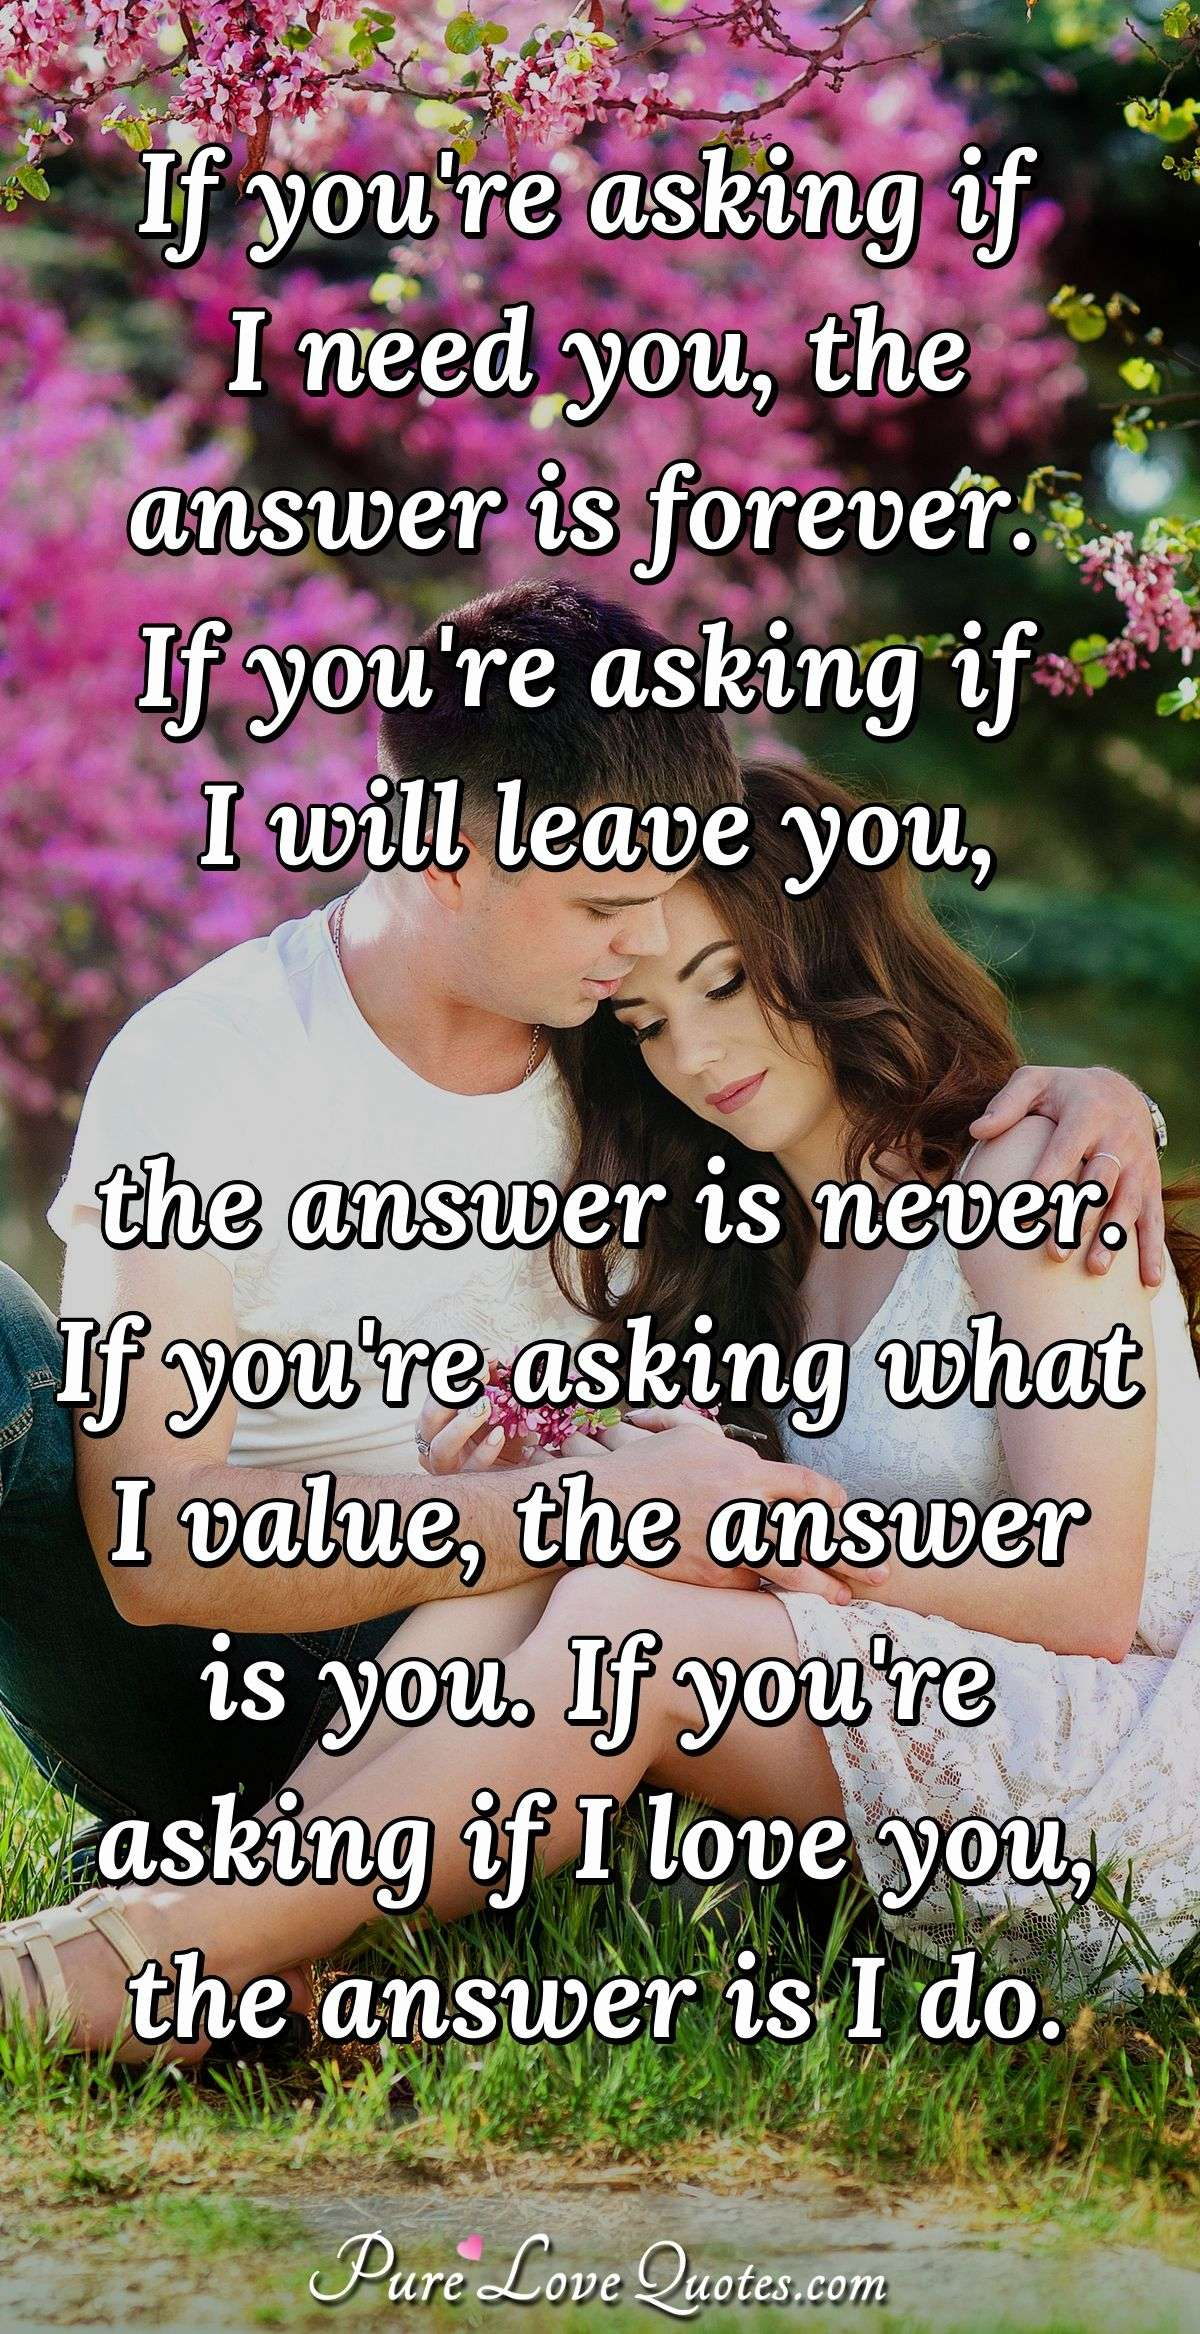 If you're asking if I need you, the answer is forever.  If you're asking if I will leave you, the answer is never.  If you're asking what I value, the answer is you.  If you're asking if I love you, the answer is I do. - Anonymous